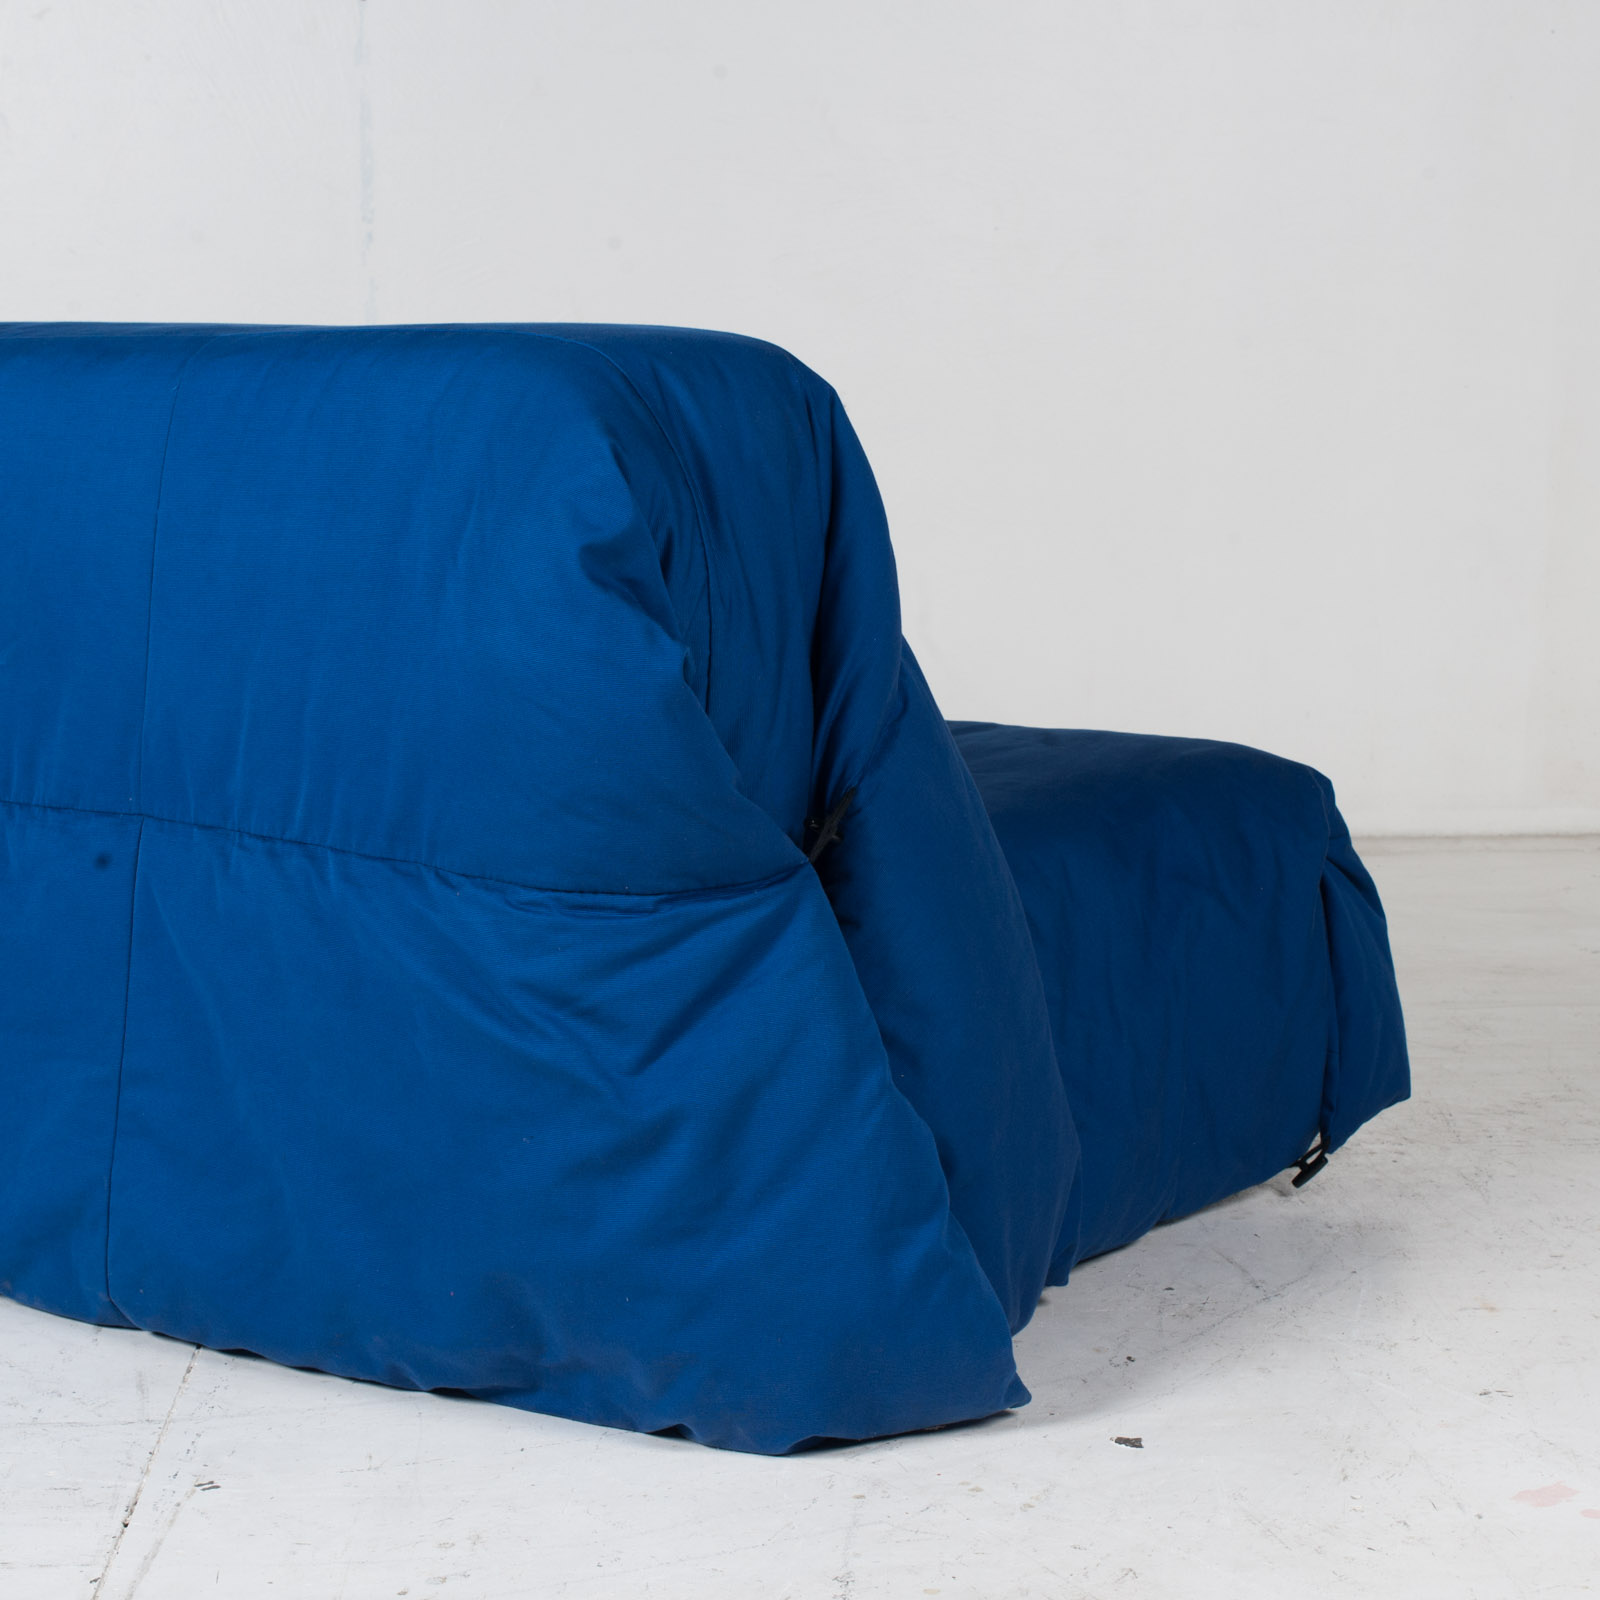 Sofa Bed By Ligne Roset In Blue Upholstery, 1960s, France8